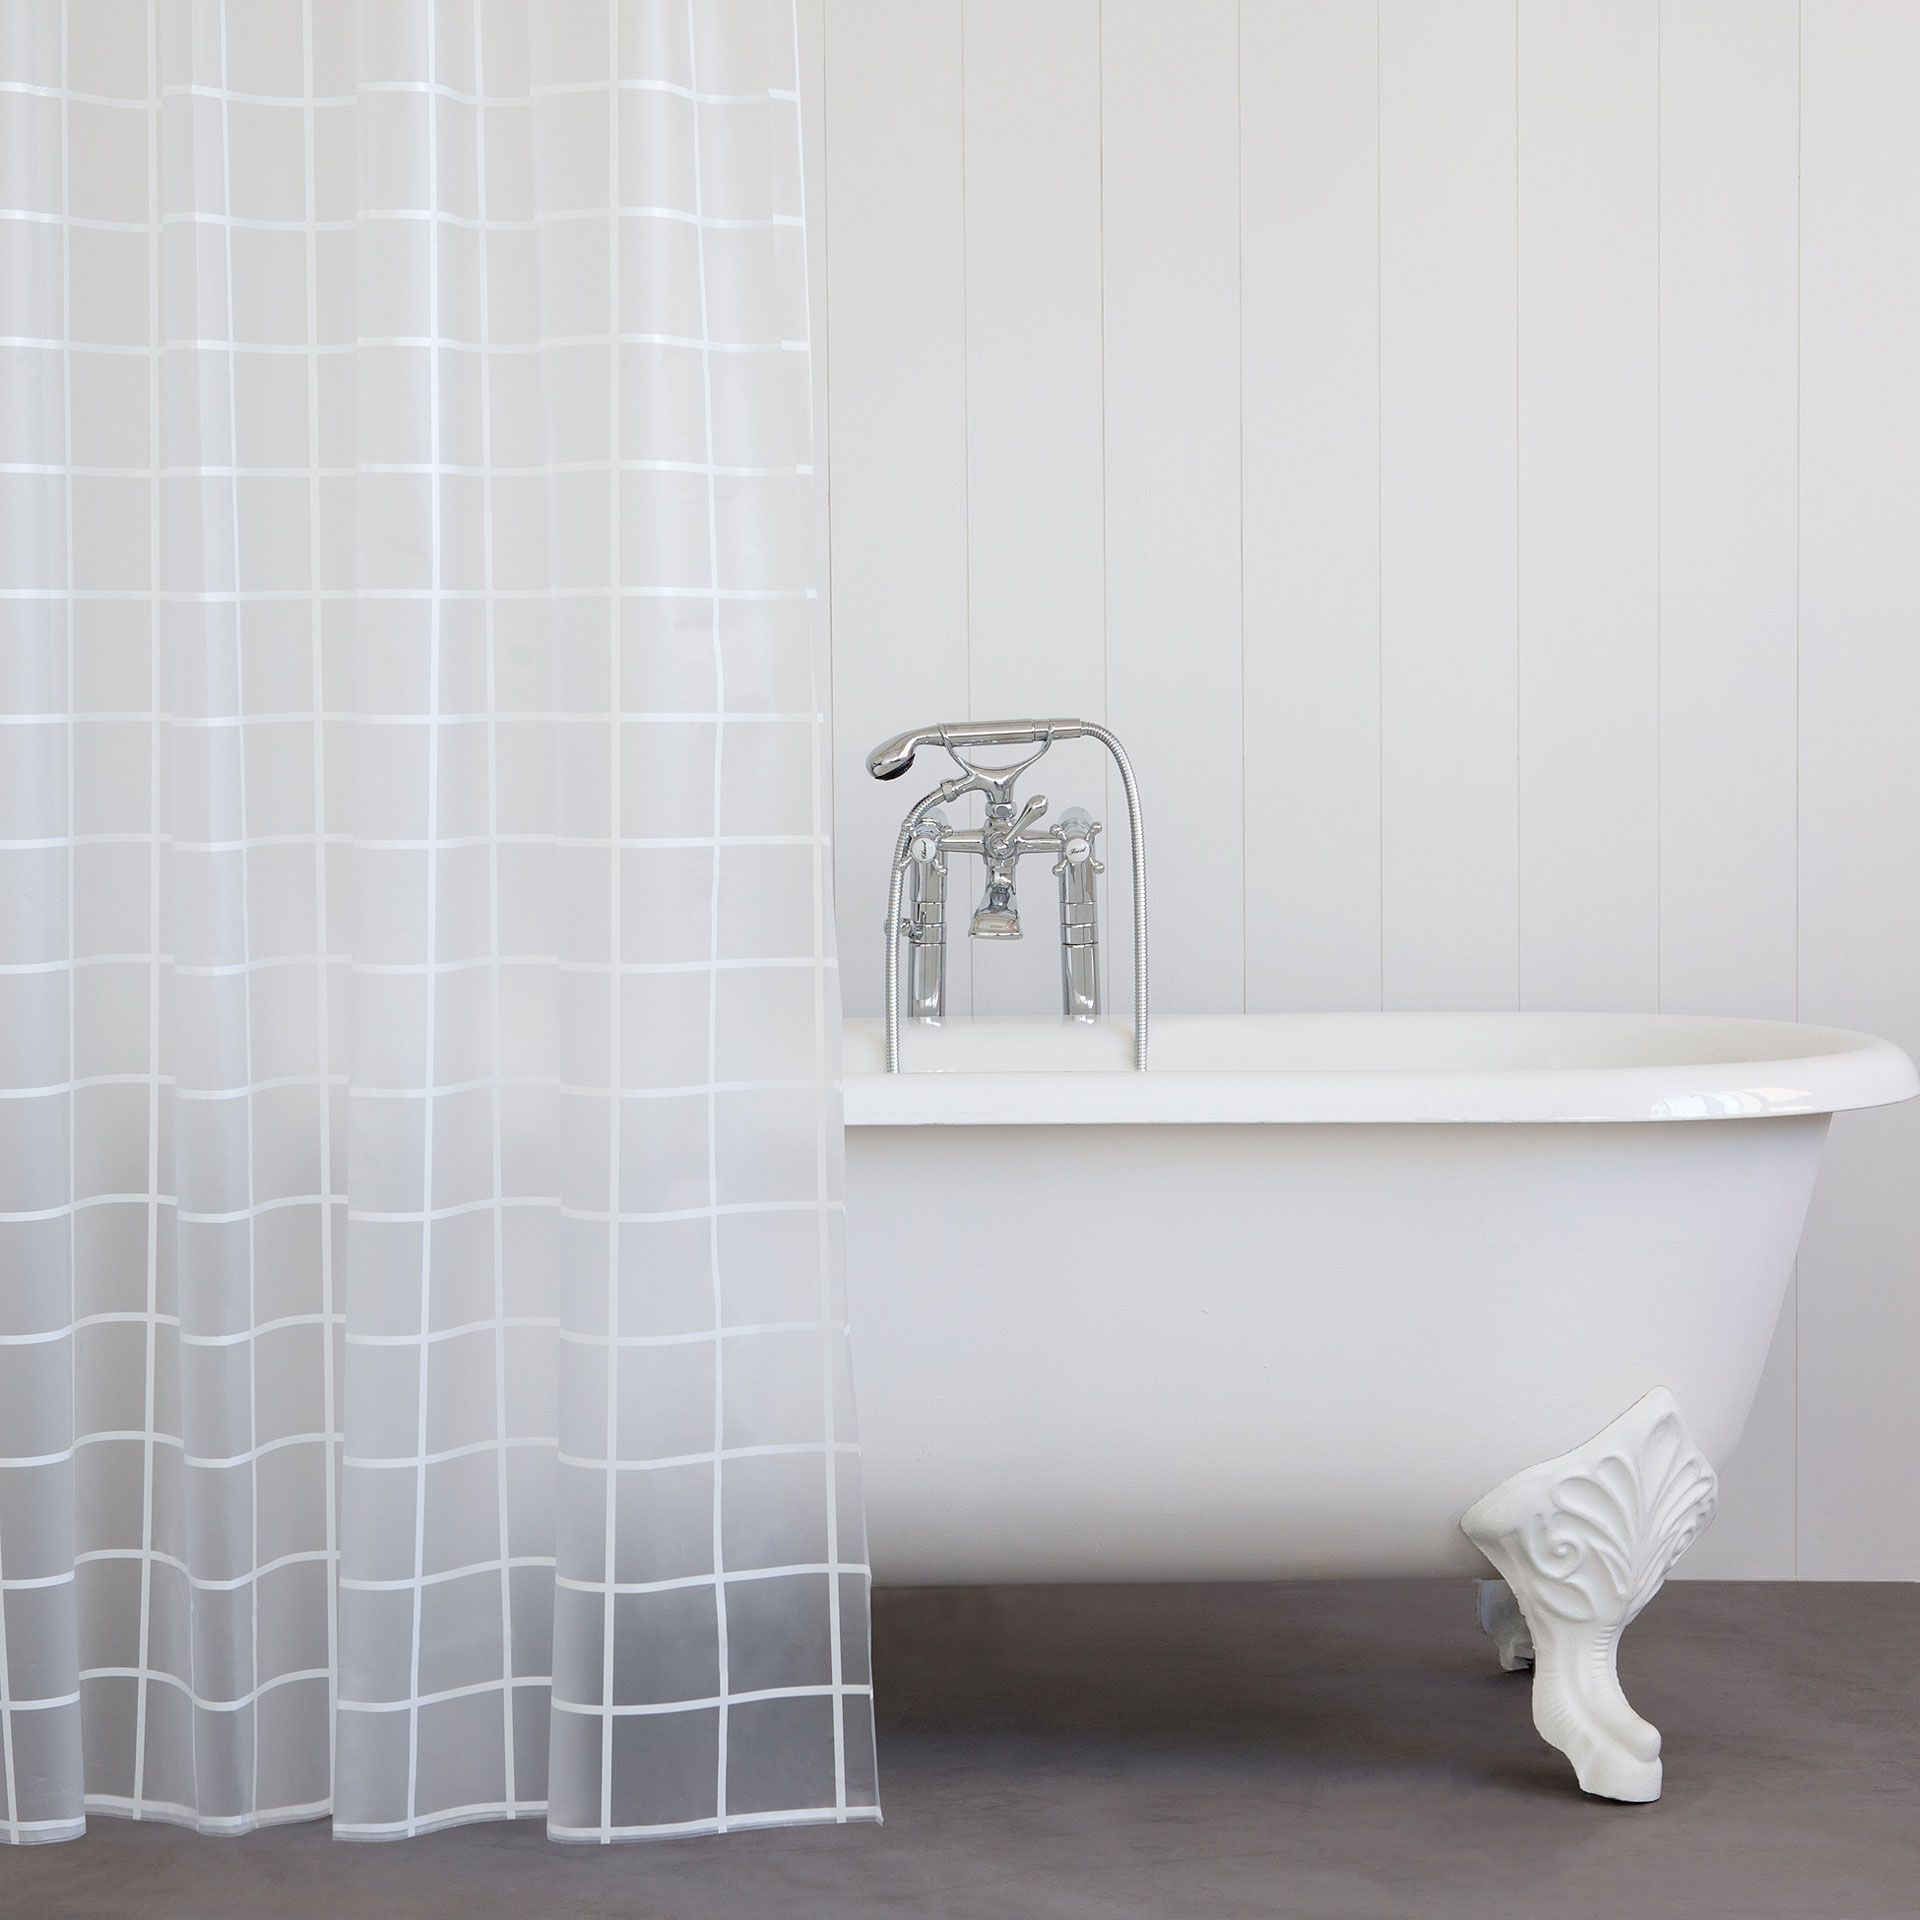 Image 1 Of The Product Checked Shower Curtain